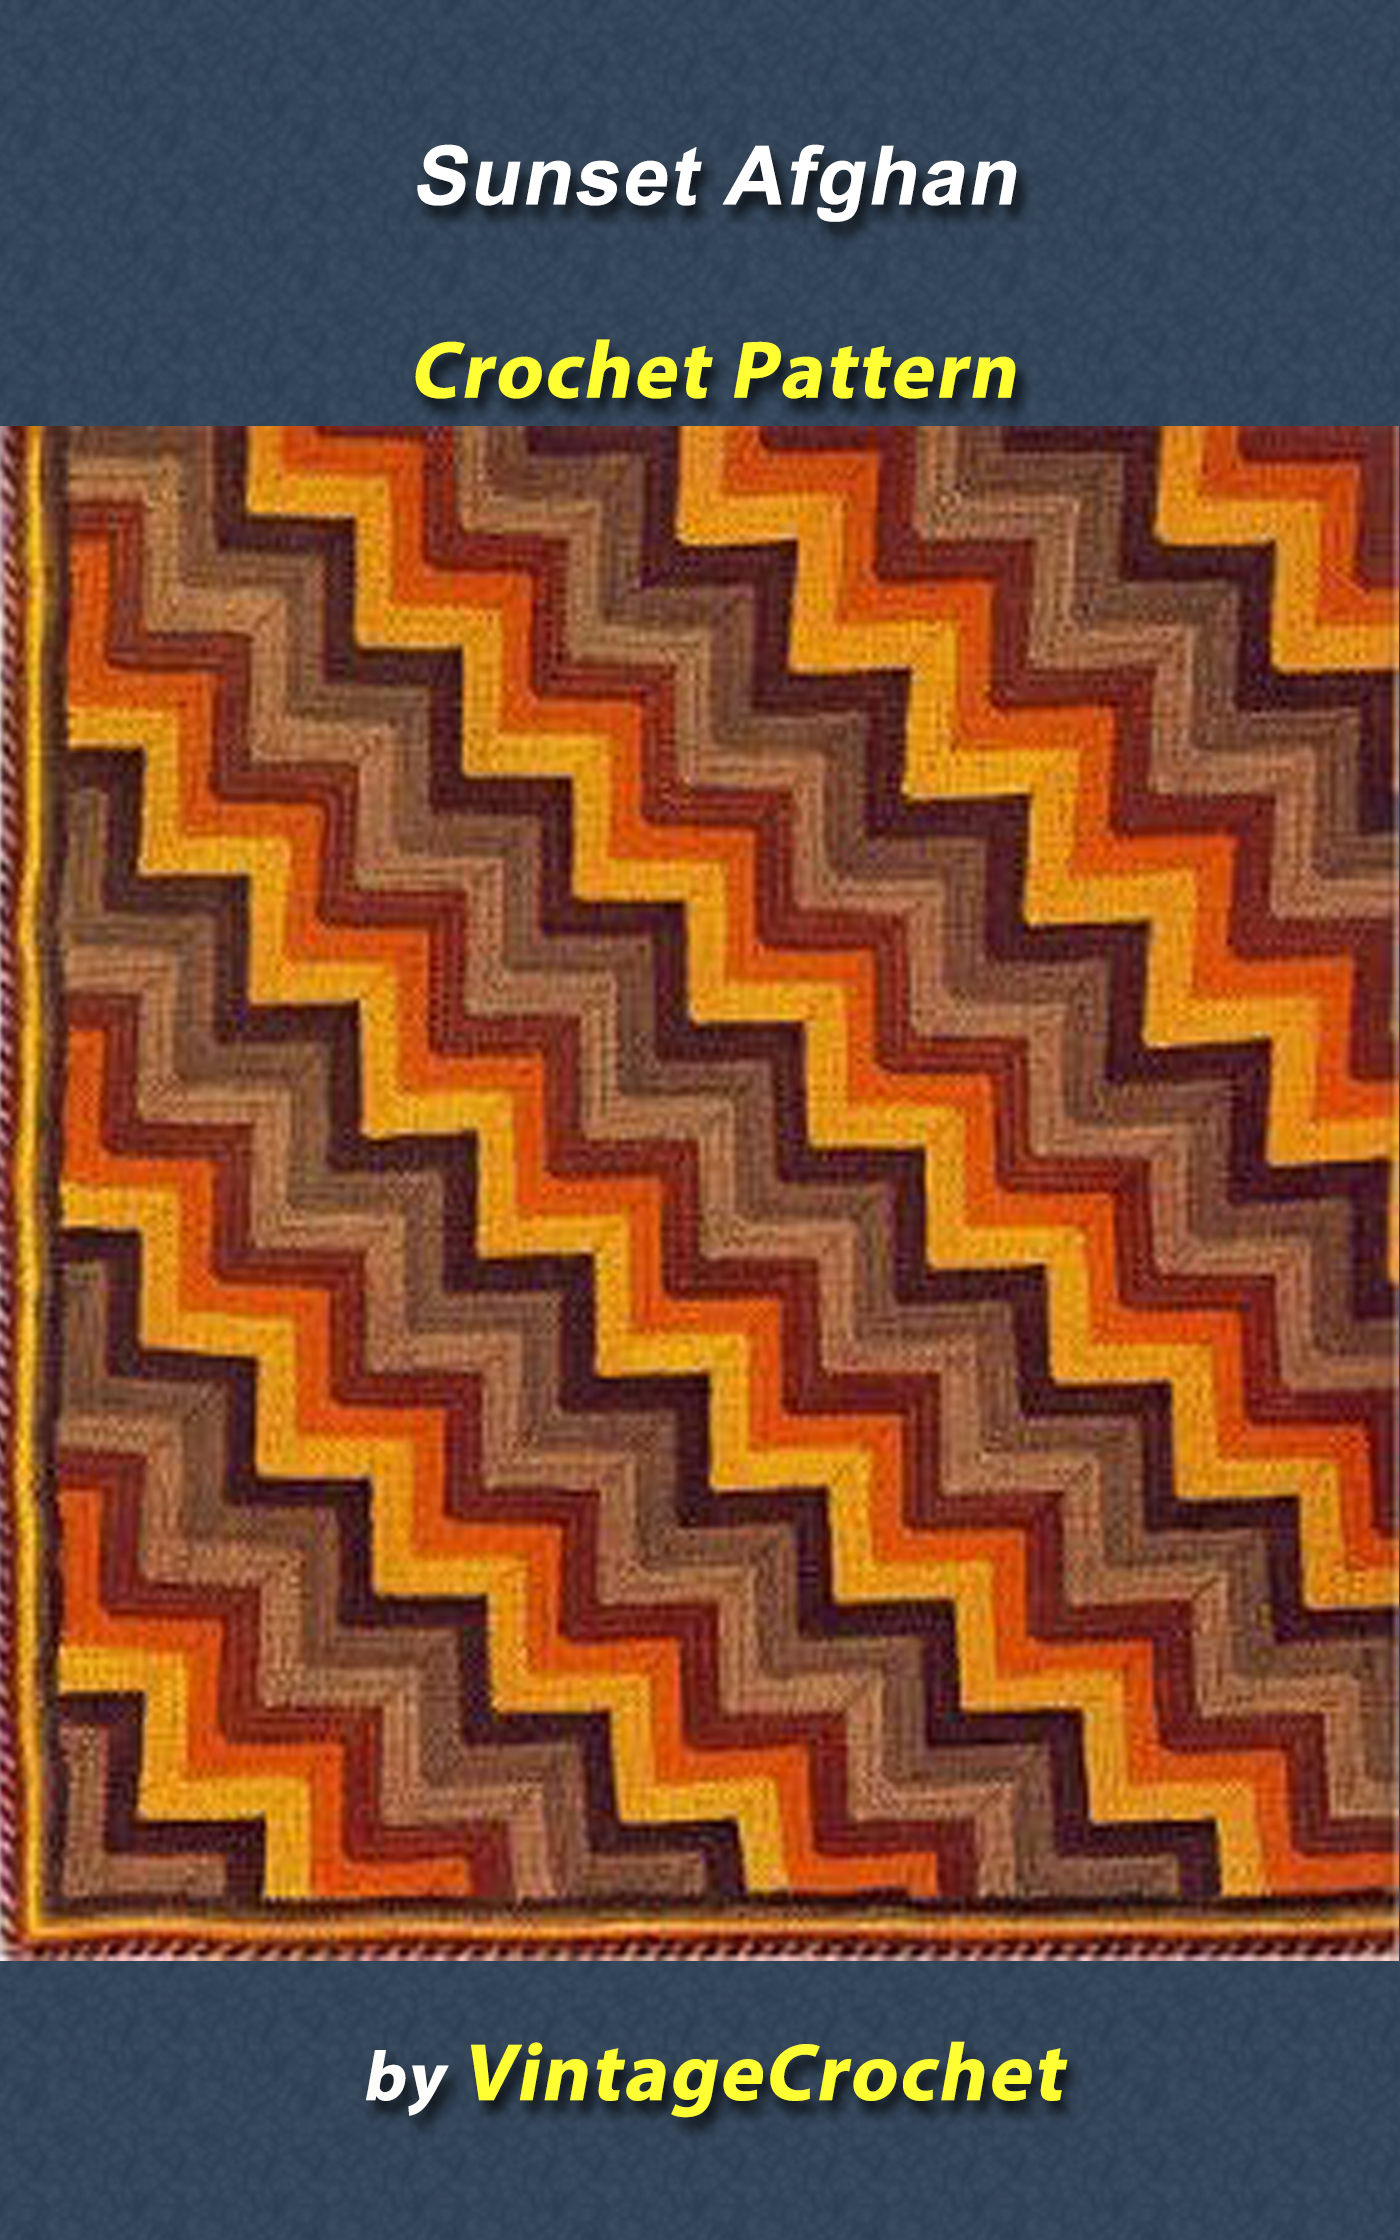 Sunset Afghan Vintage Crochet Pattern